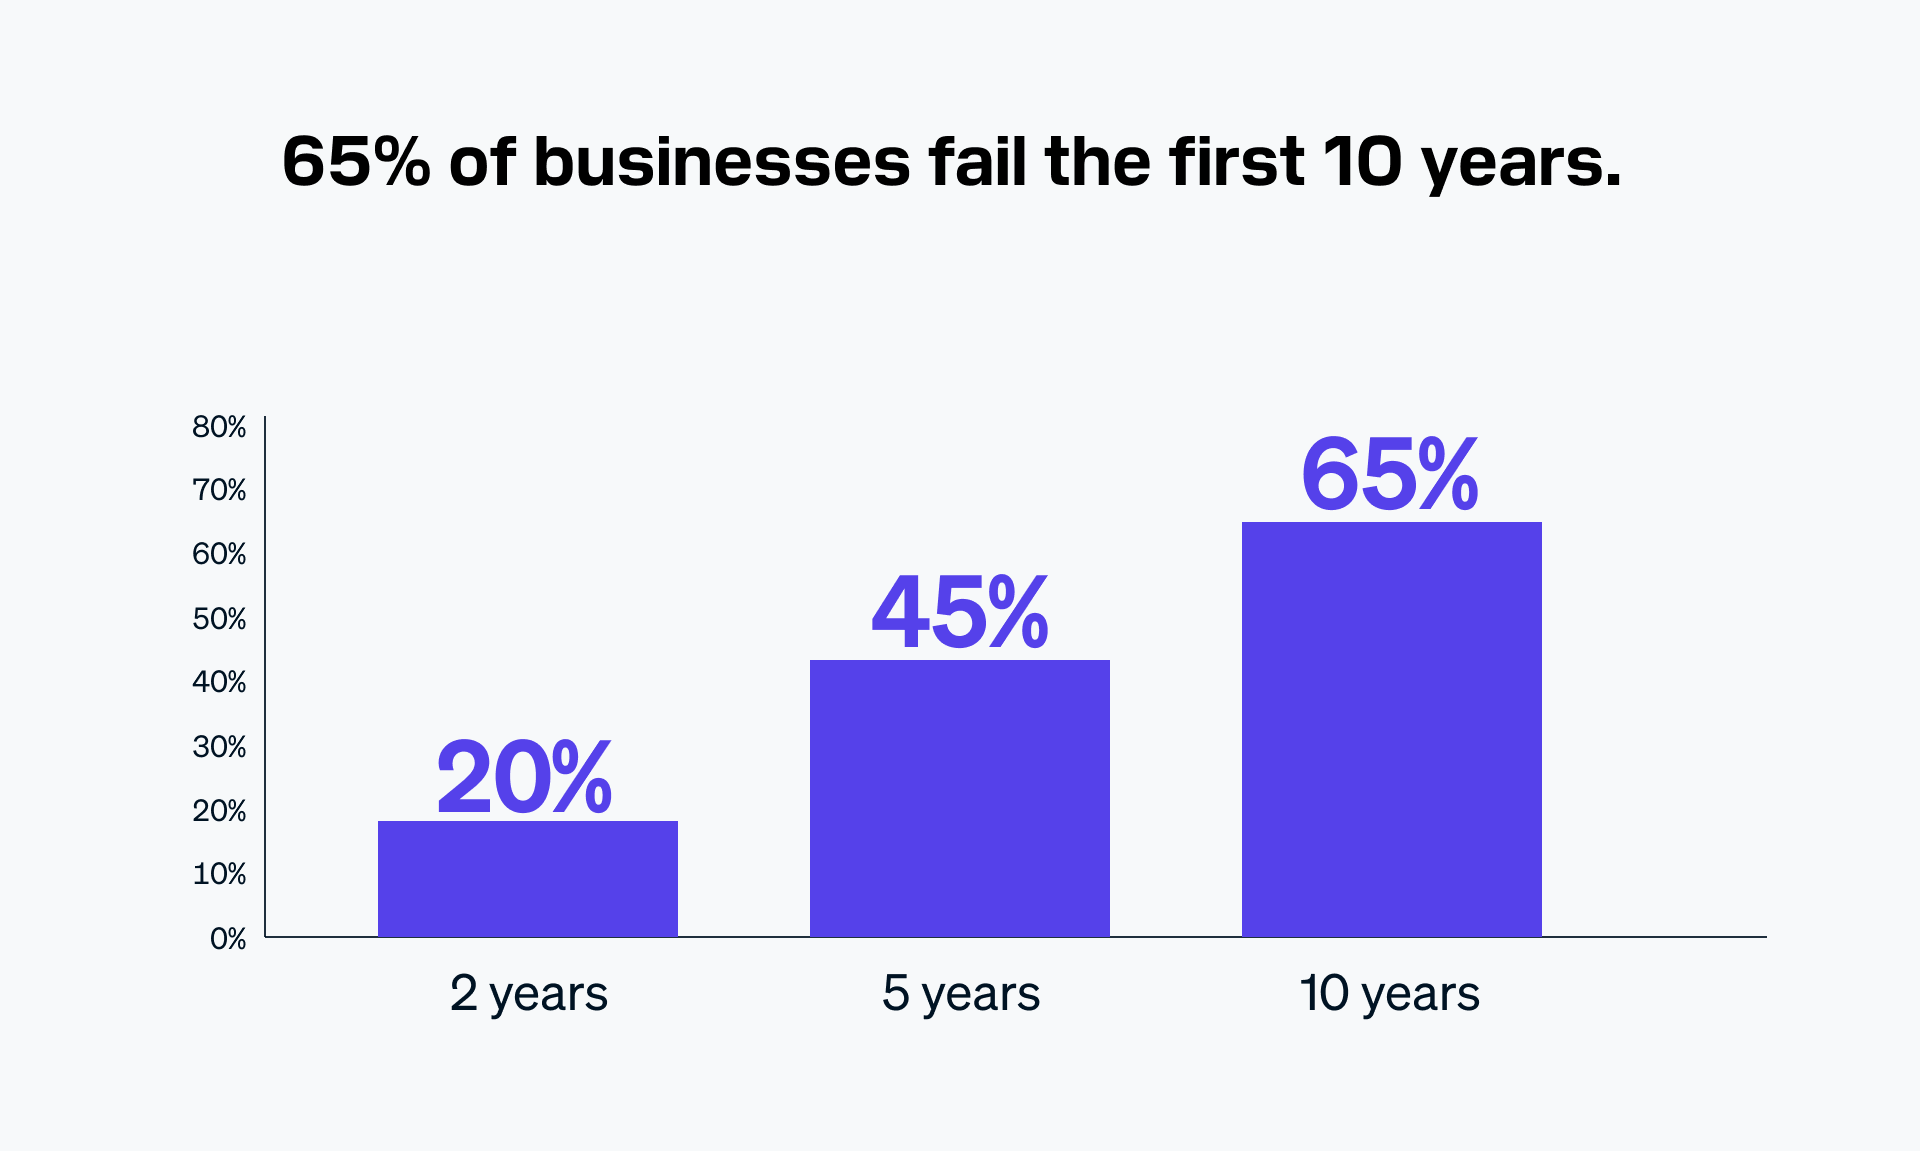 65% of business fail the first 10 years.